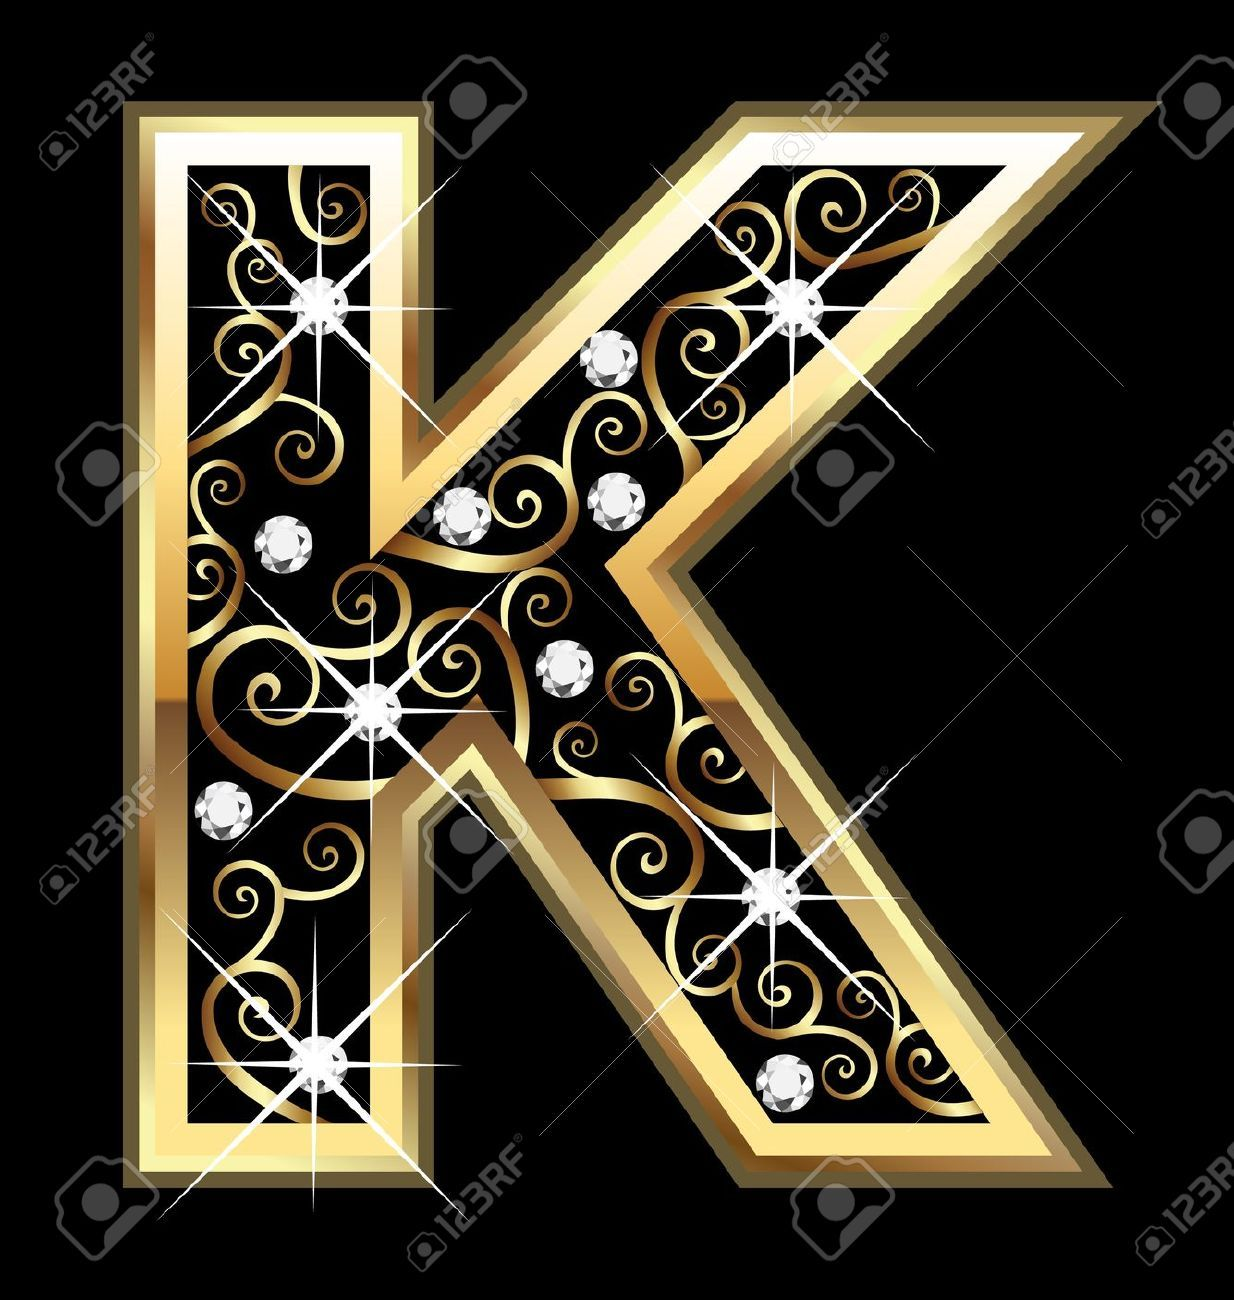 K gold letter with swirly ornaments royalty free cliparts vectors art clipart biocorpaavc